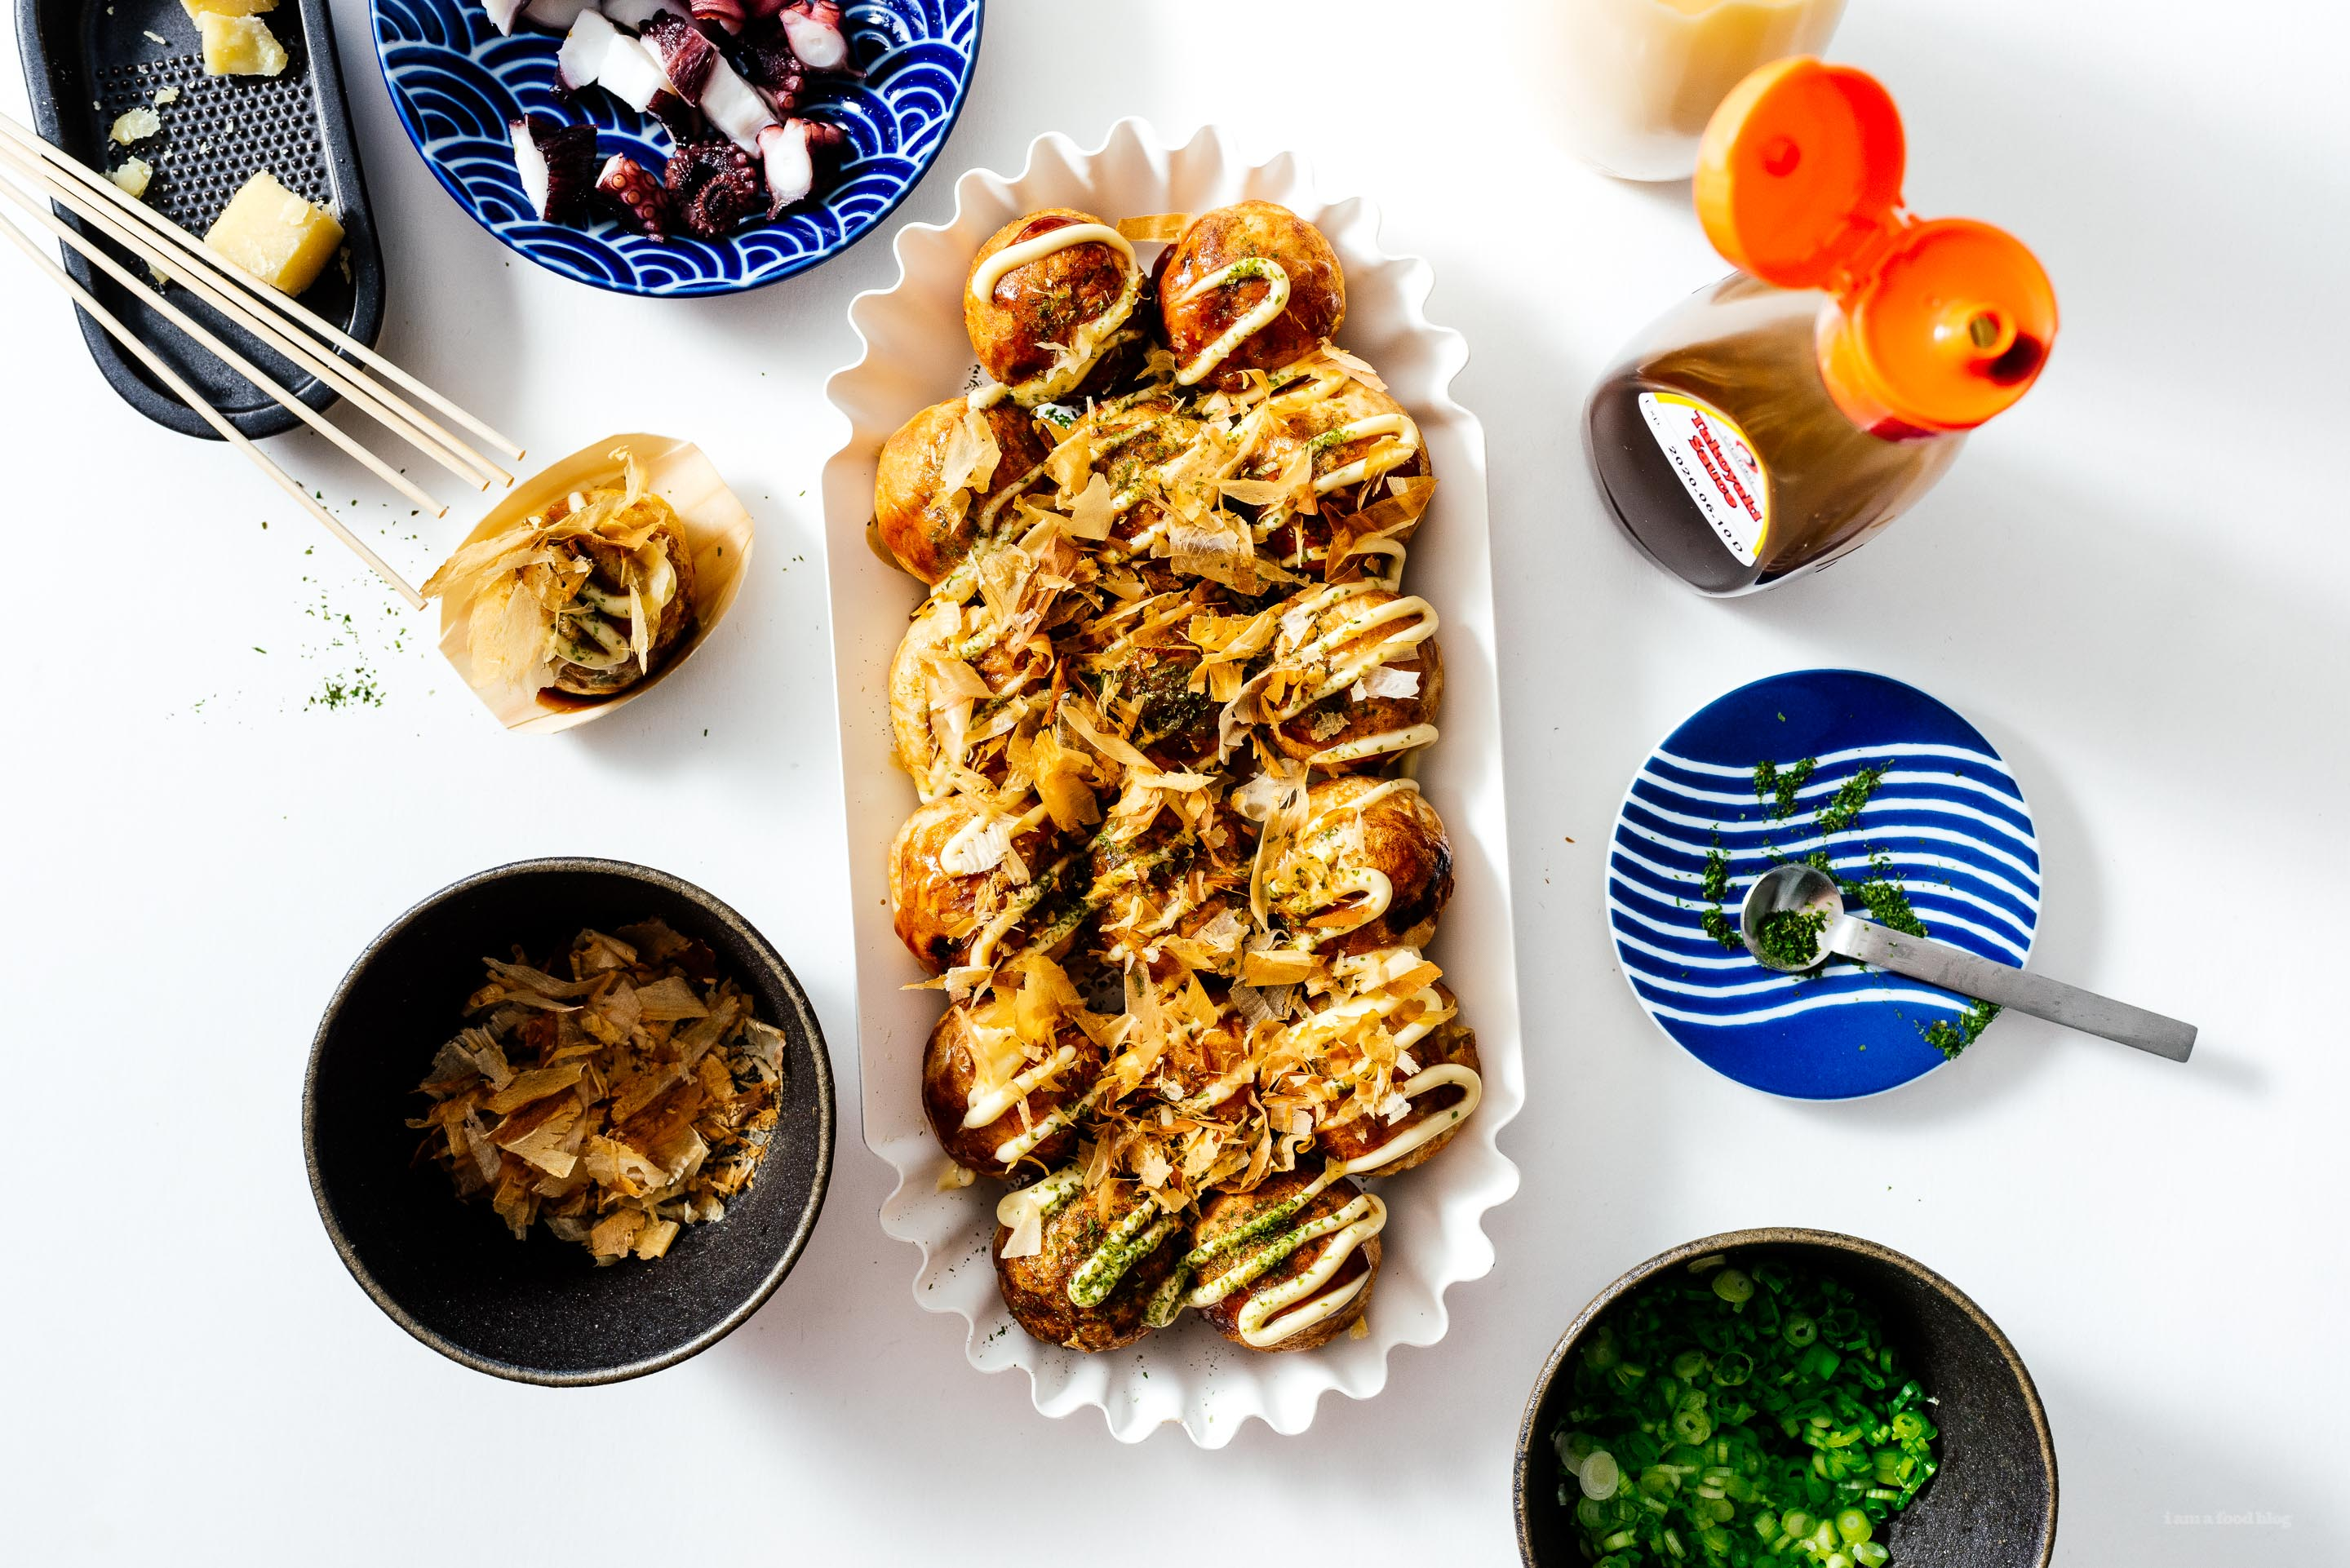 This is the Best Dinner Party Food Ever: an Easy Authentic Takoyaki Recipe to Make with Friends and Family